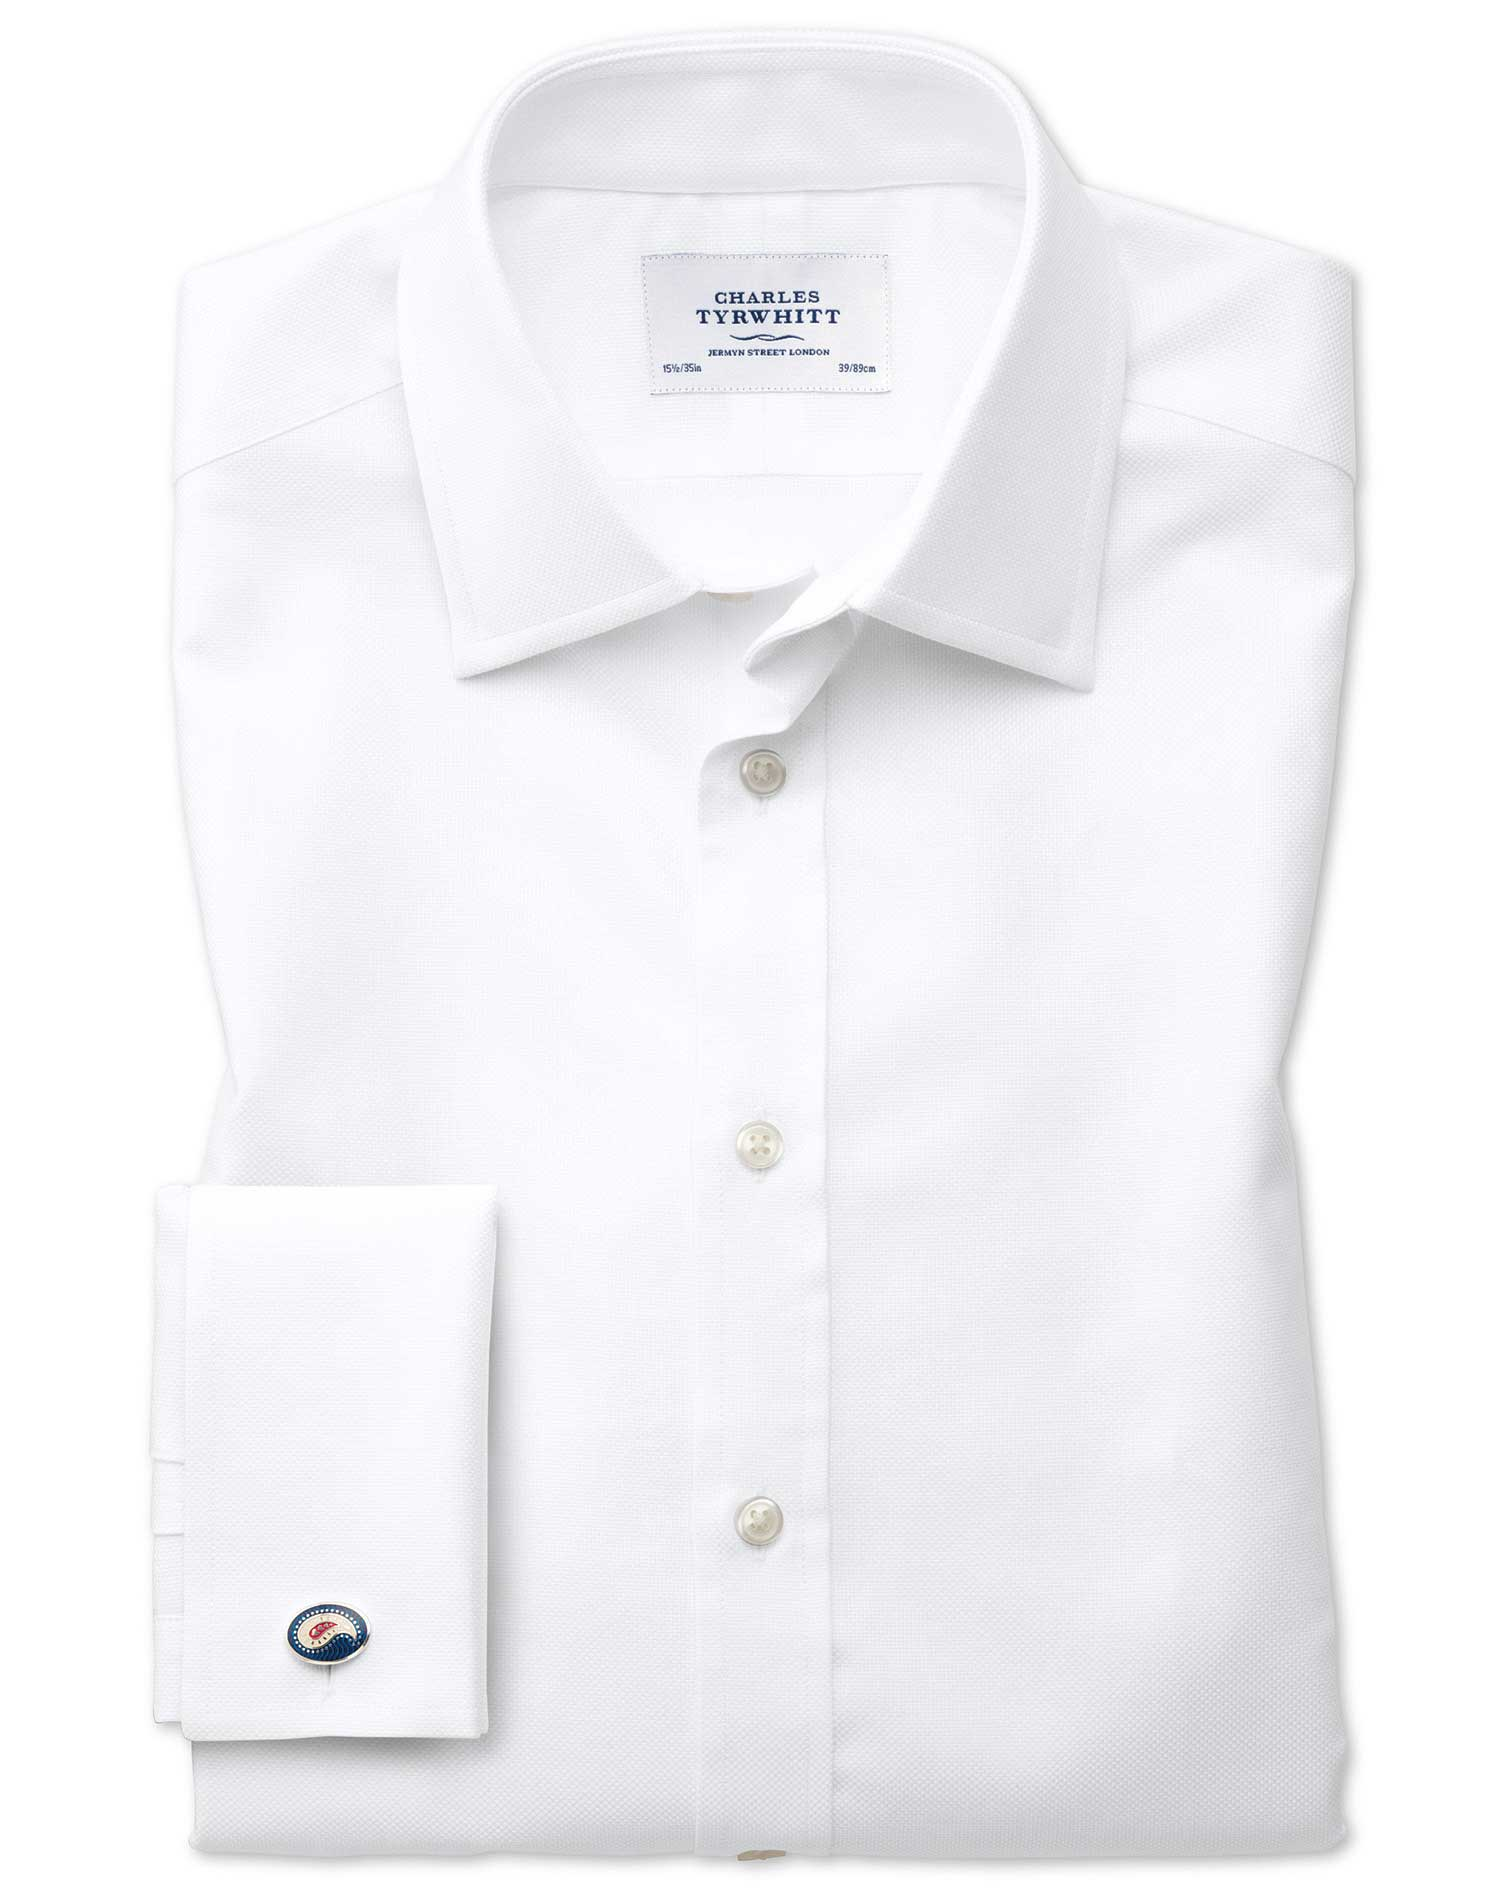 Classic Fit Egyptian Cotton Royal Oxford White Formal Shirt Single Cuff Size 16.5/34 by Charles Tyrw